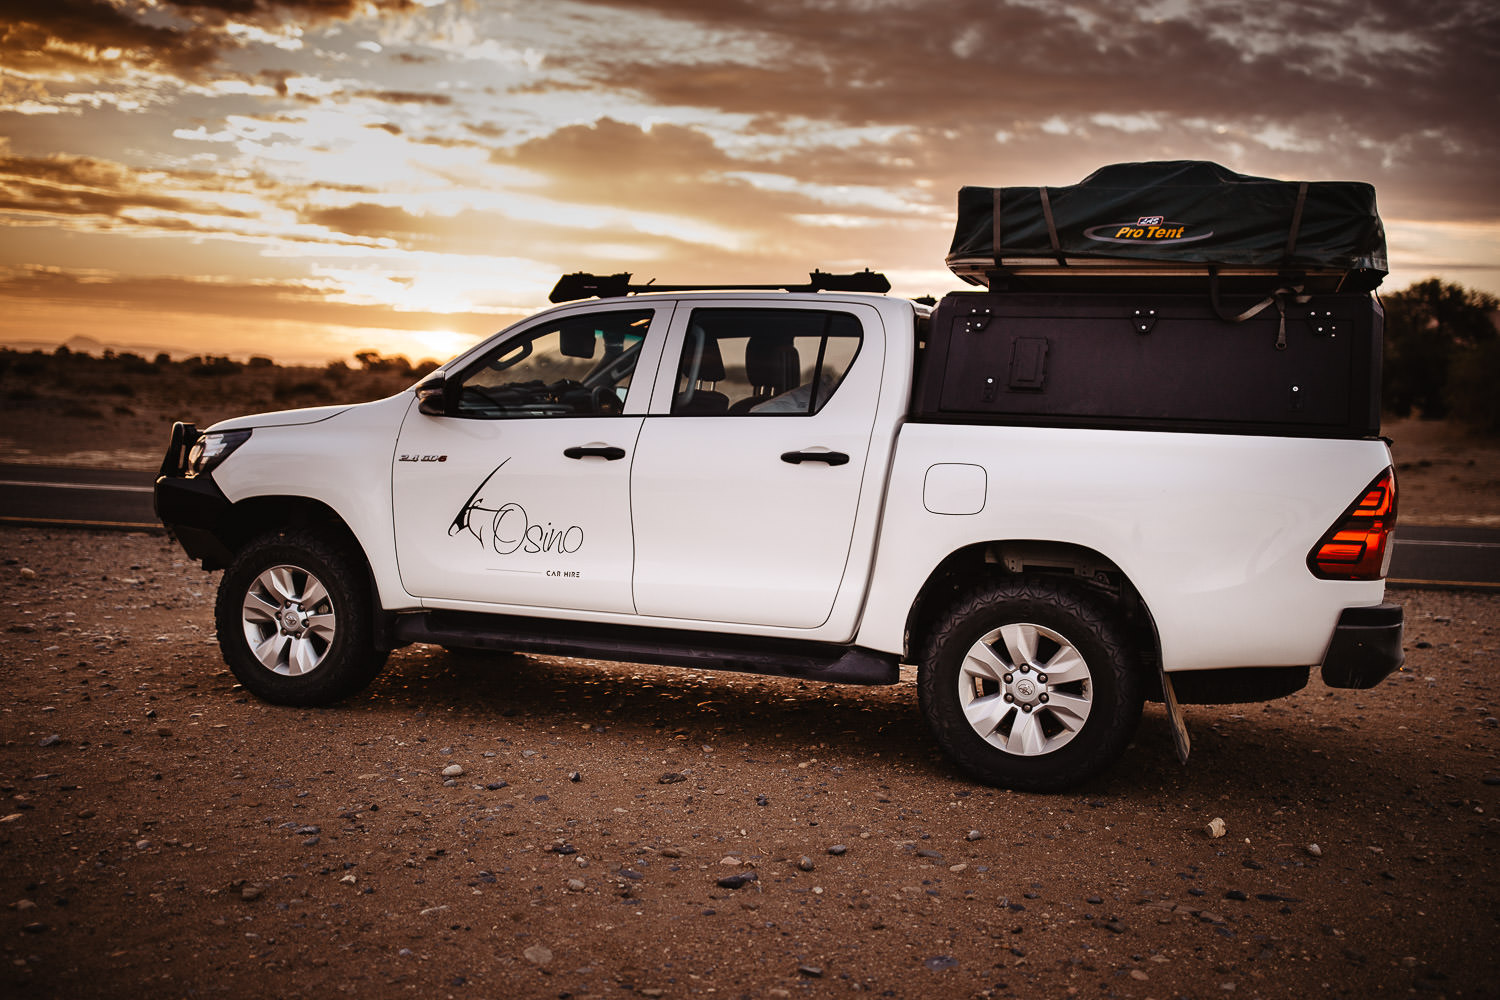 safari adventure namibia tour with a car and rooftop tent